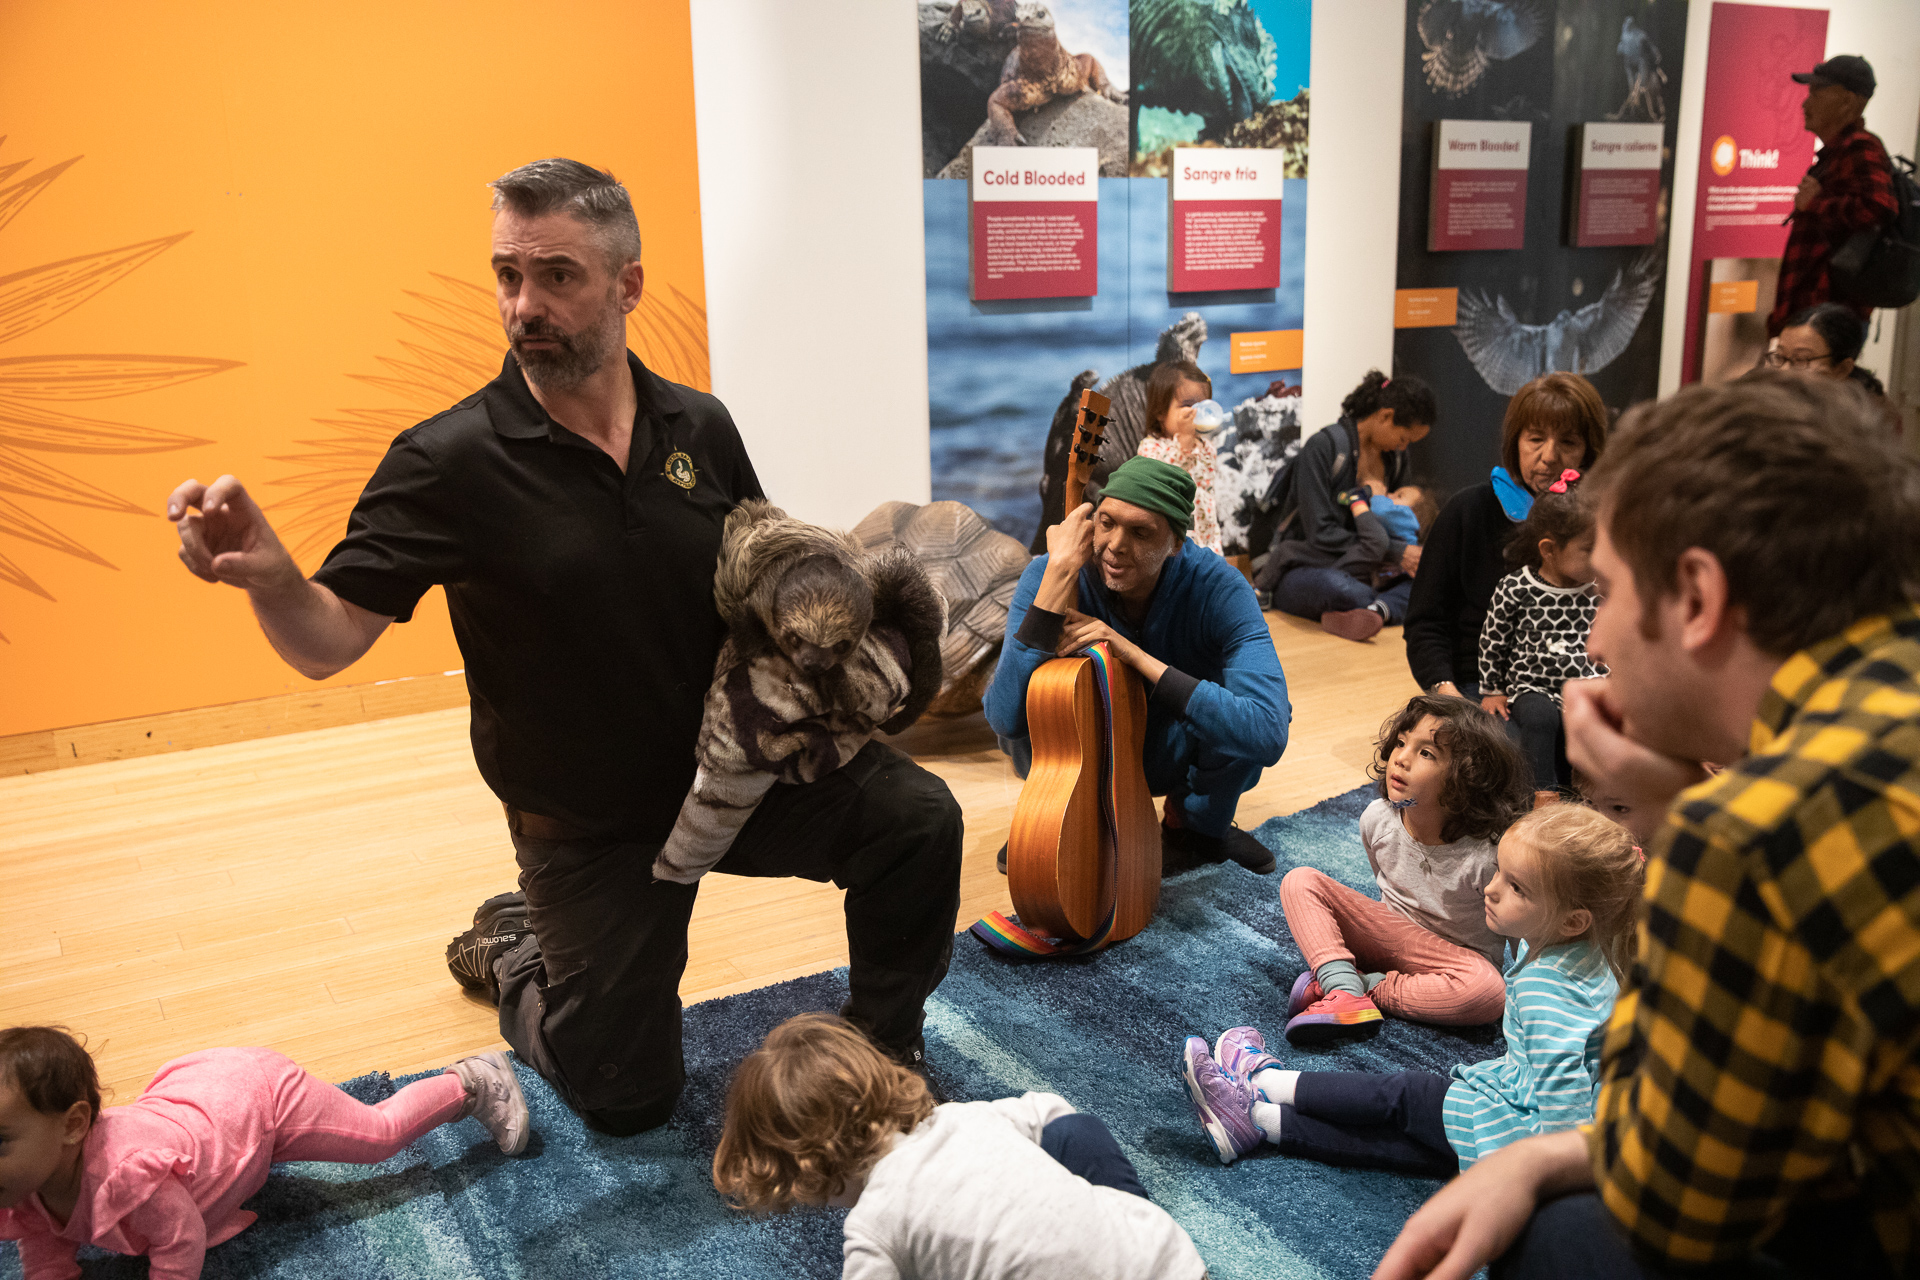 Paul Raymond Goulet of Little Ray's Nature Centres introduces Roger the Sloth to Brooklyn Children's Museum visitors. Eagle photo by Paul Frangipane